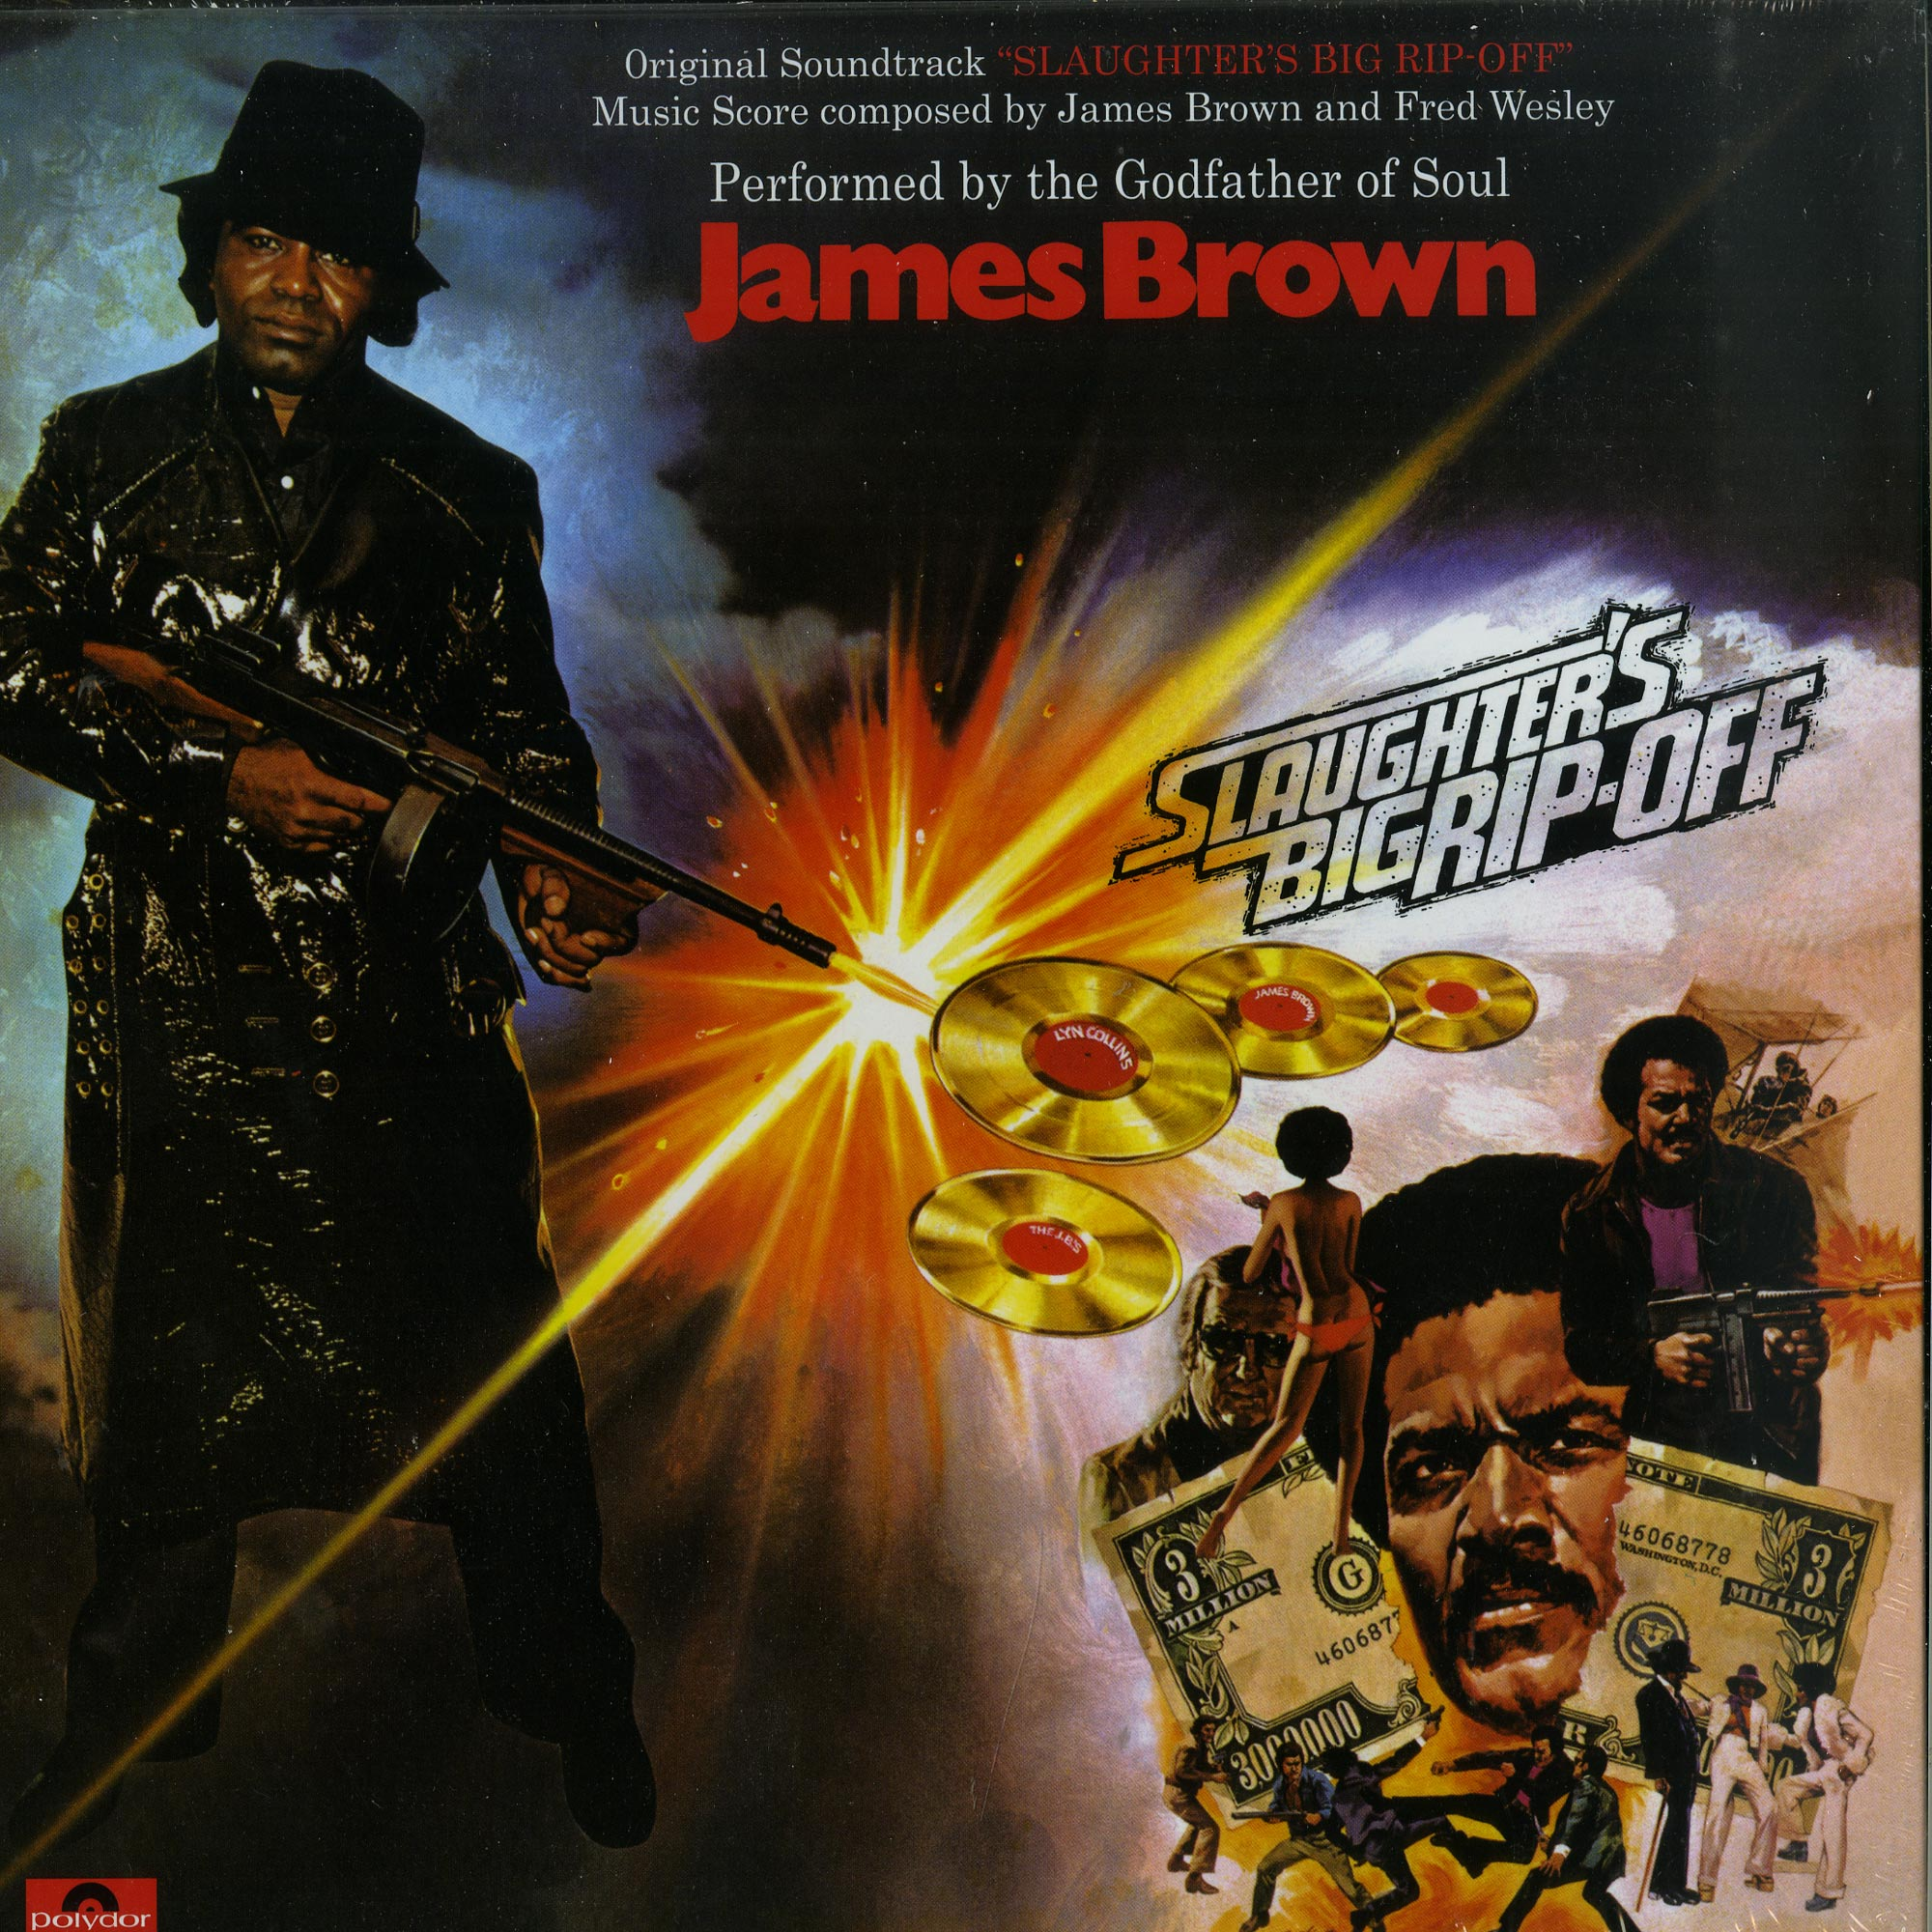 James Brown - SLAUGHTERS BIG RIP-OFF O.S.T.